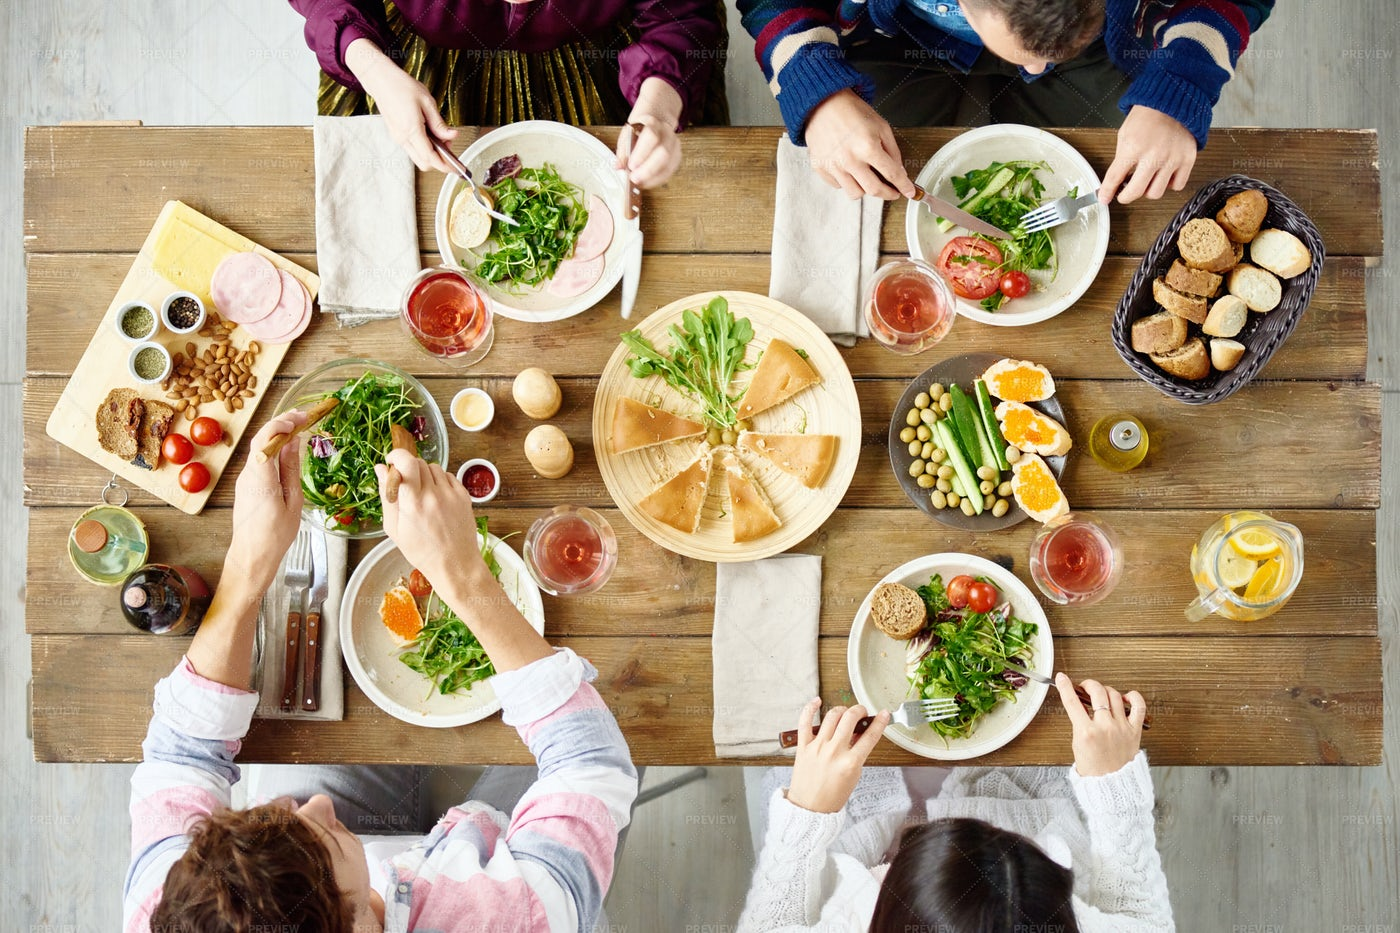 Family Gathering At Dinner Table: Stock Photos